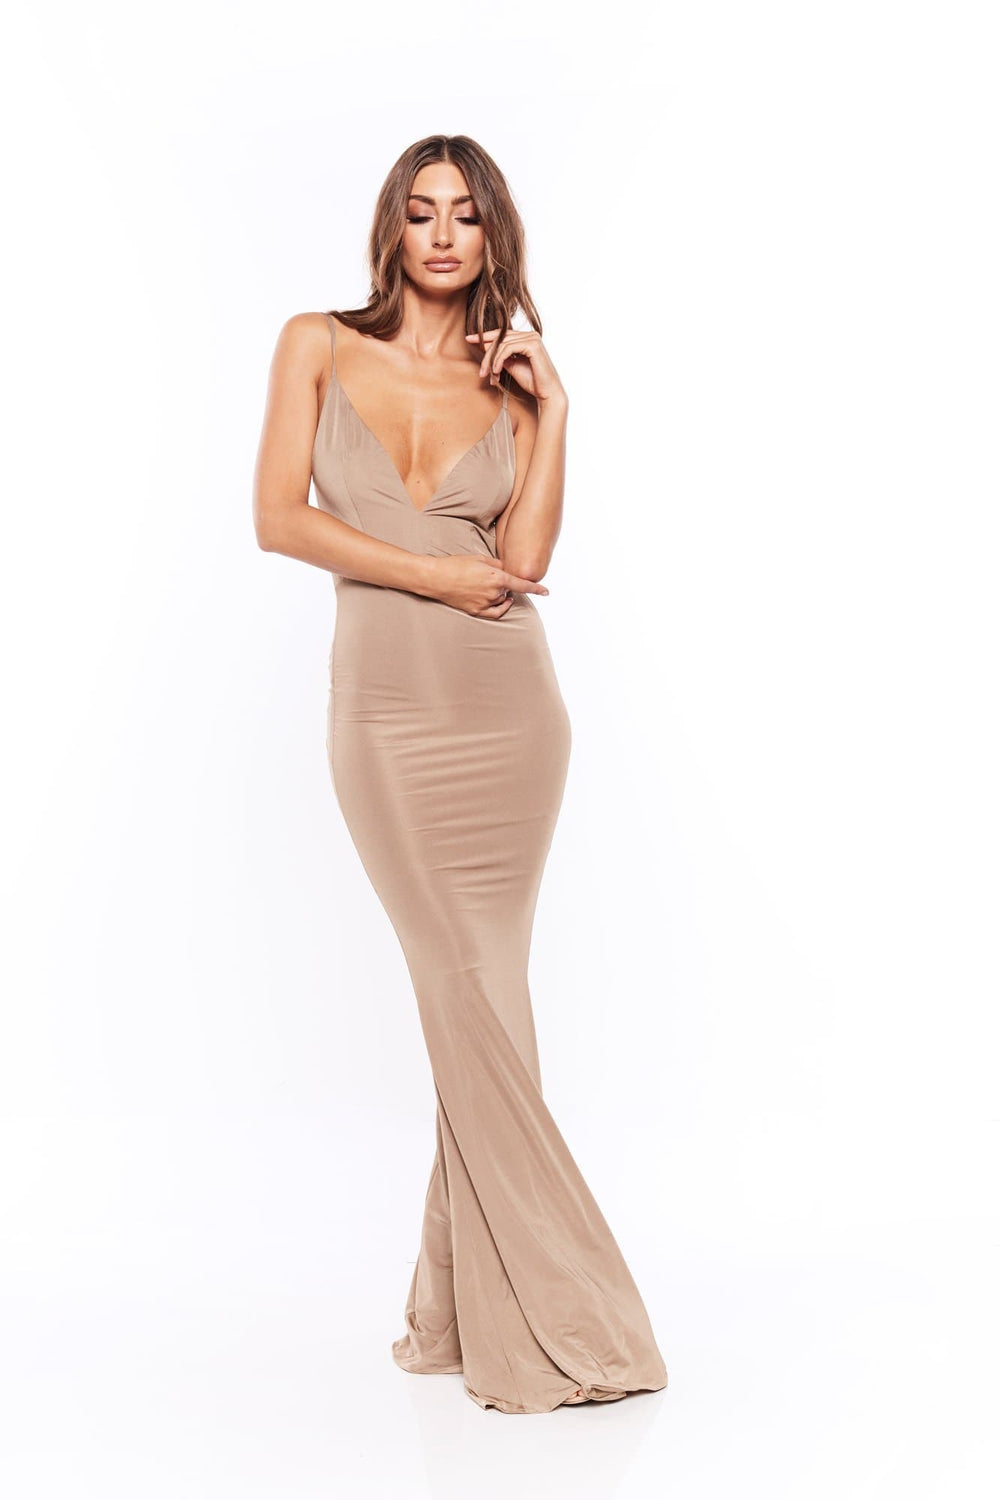 Penelope - Bronze V Neck Dress with Backless Style & Back Knot Detail